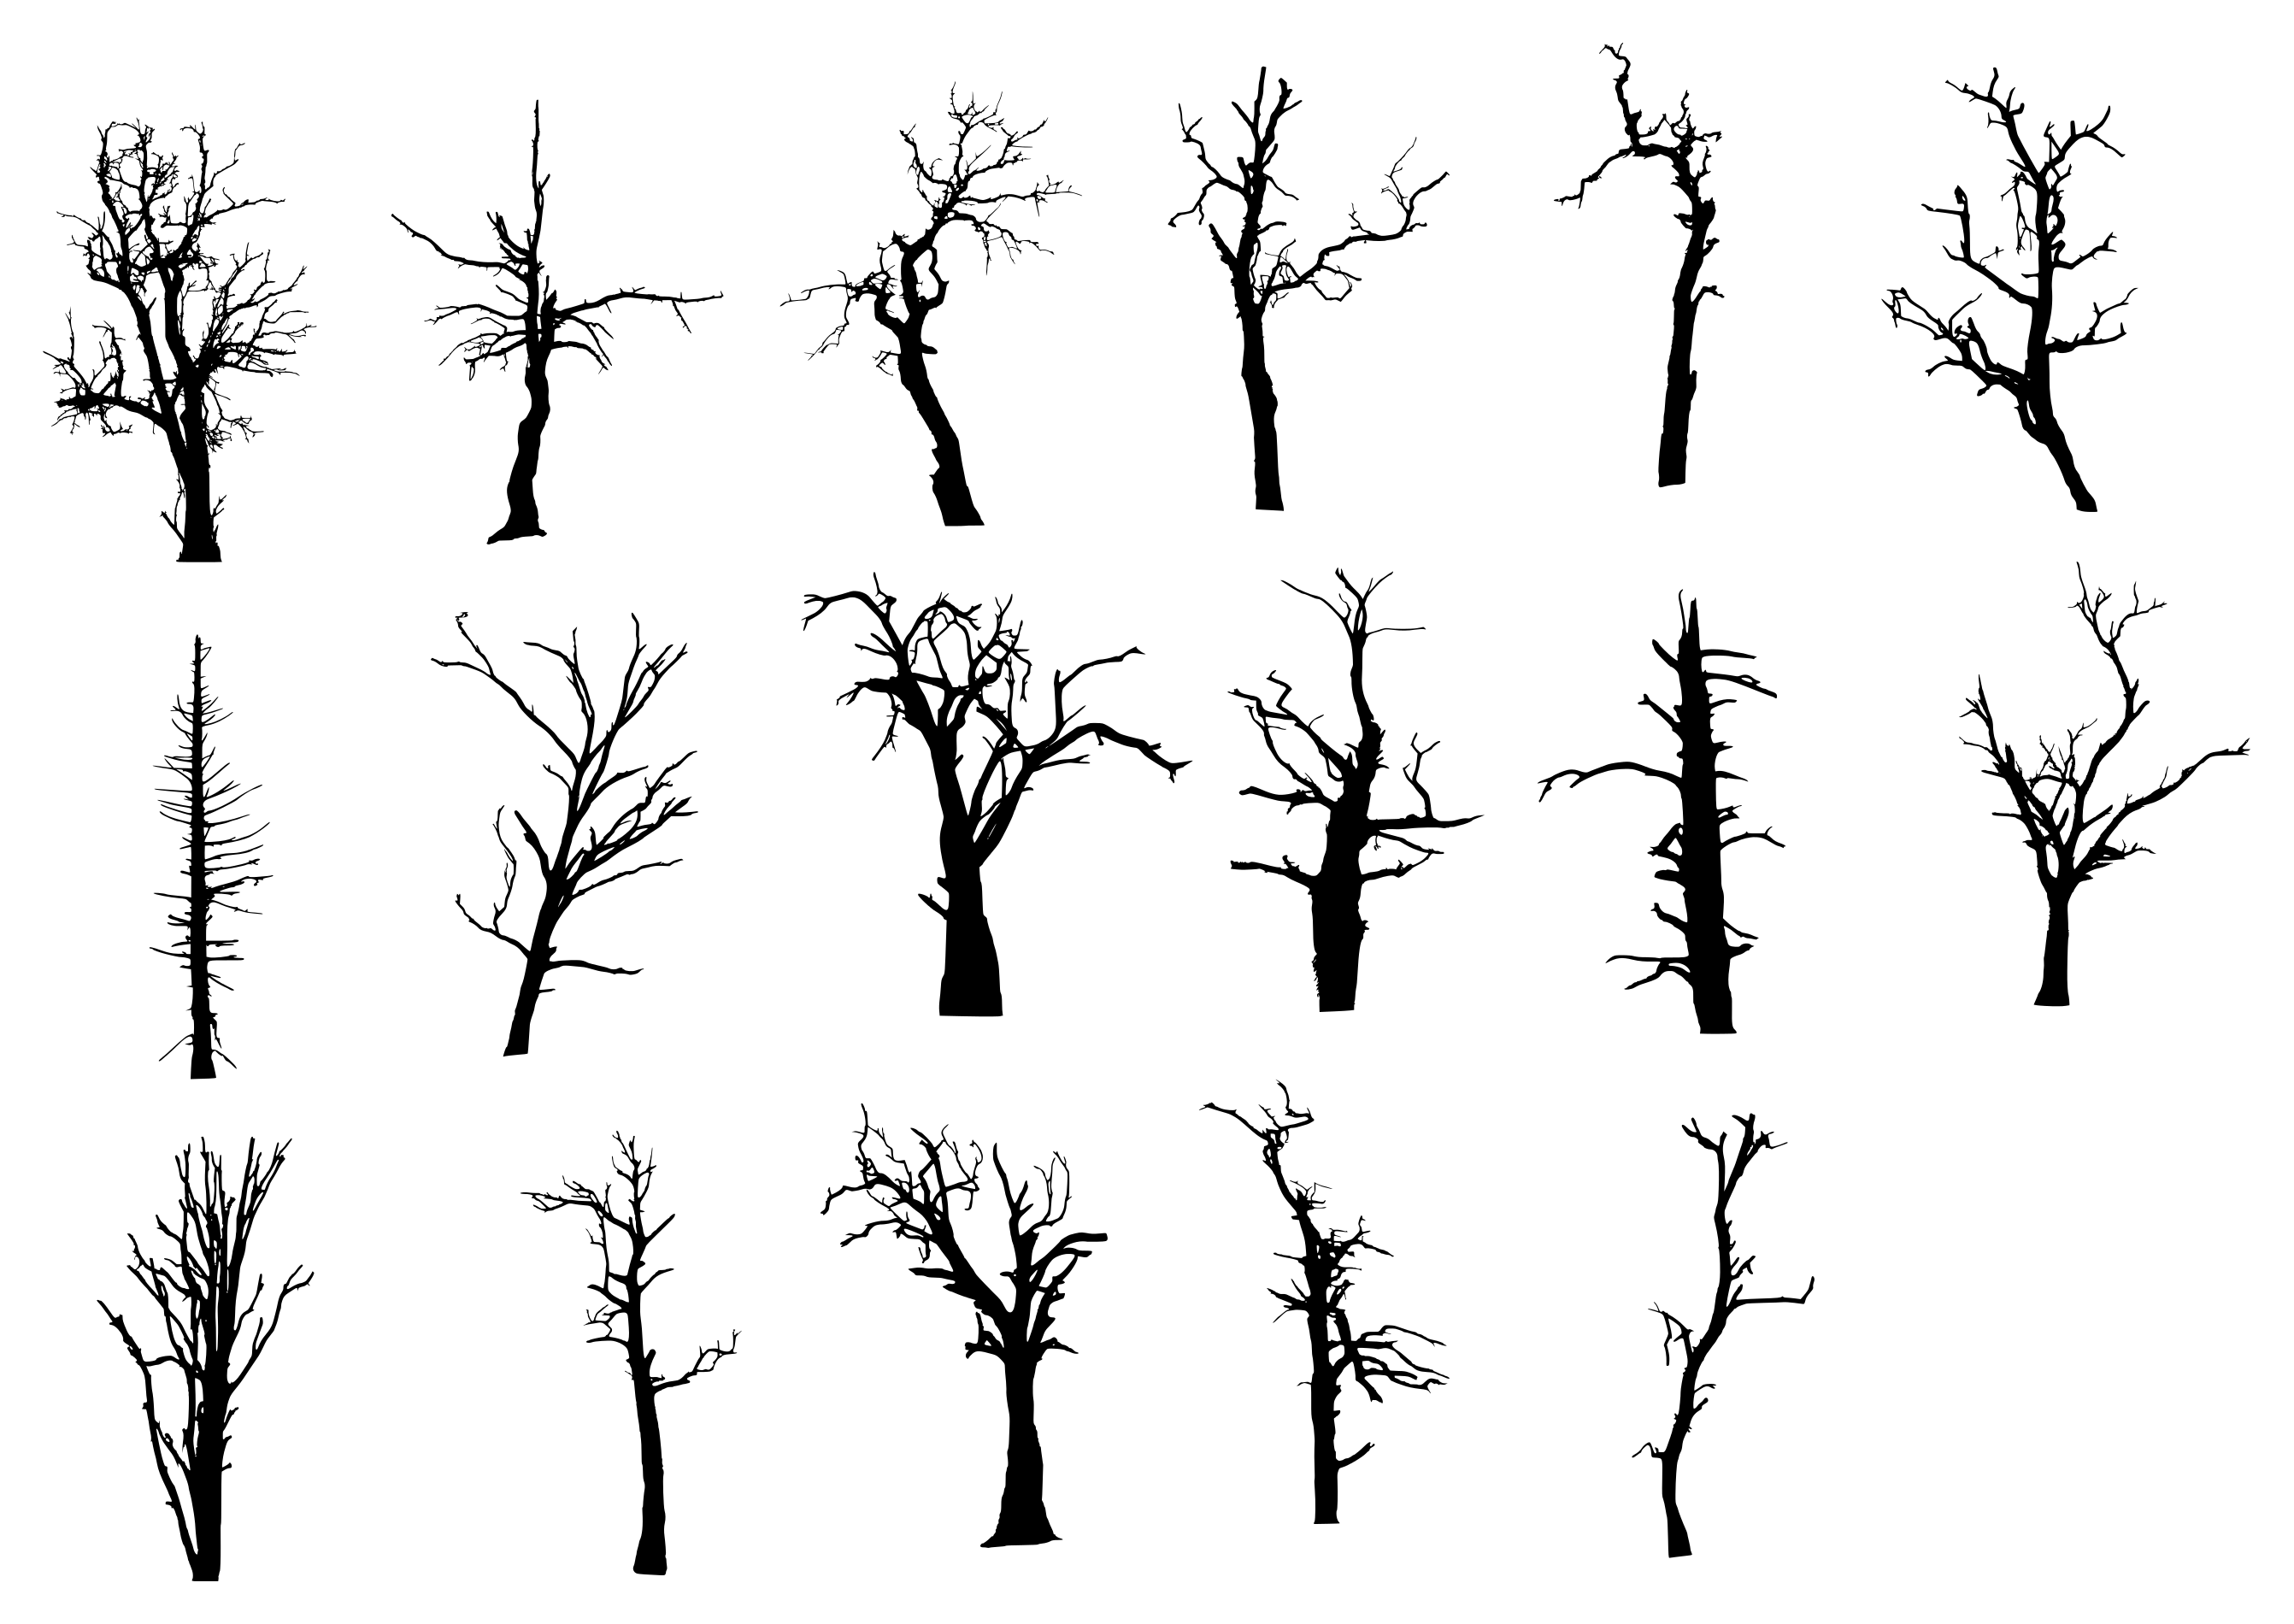 17 Dead Tree Silhouette Png Transparent Onlygfx Com Pine Tree Drawing Tree Silhouette Pine Tree Art